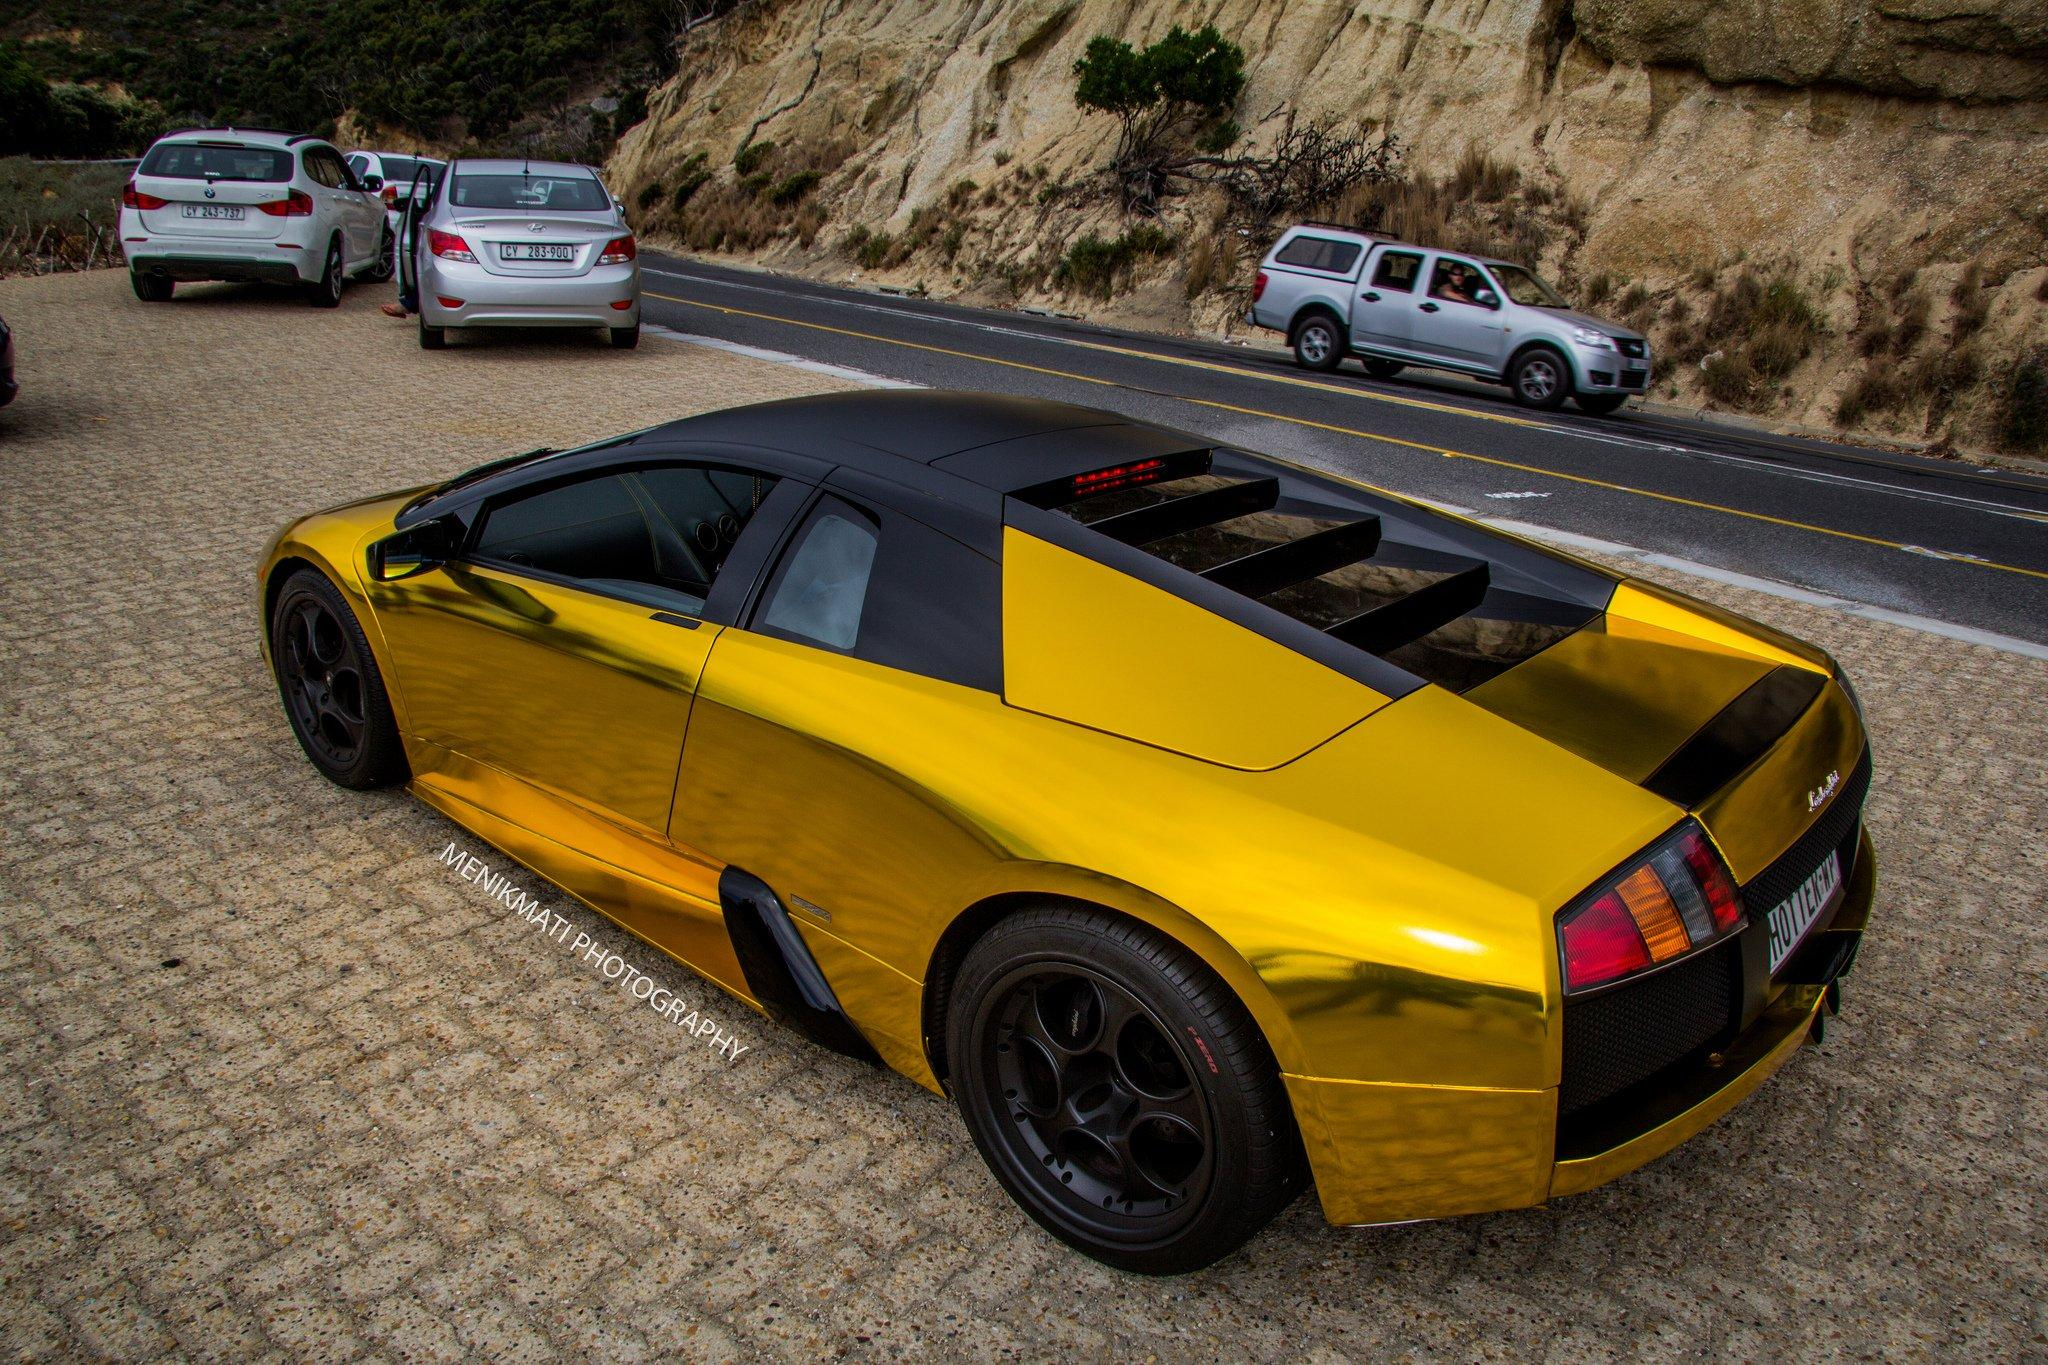 Gold Supercars Wallpapers - Wallpaper Cave